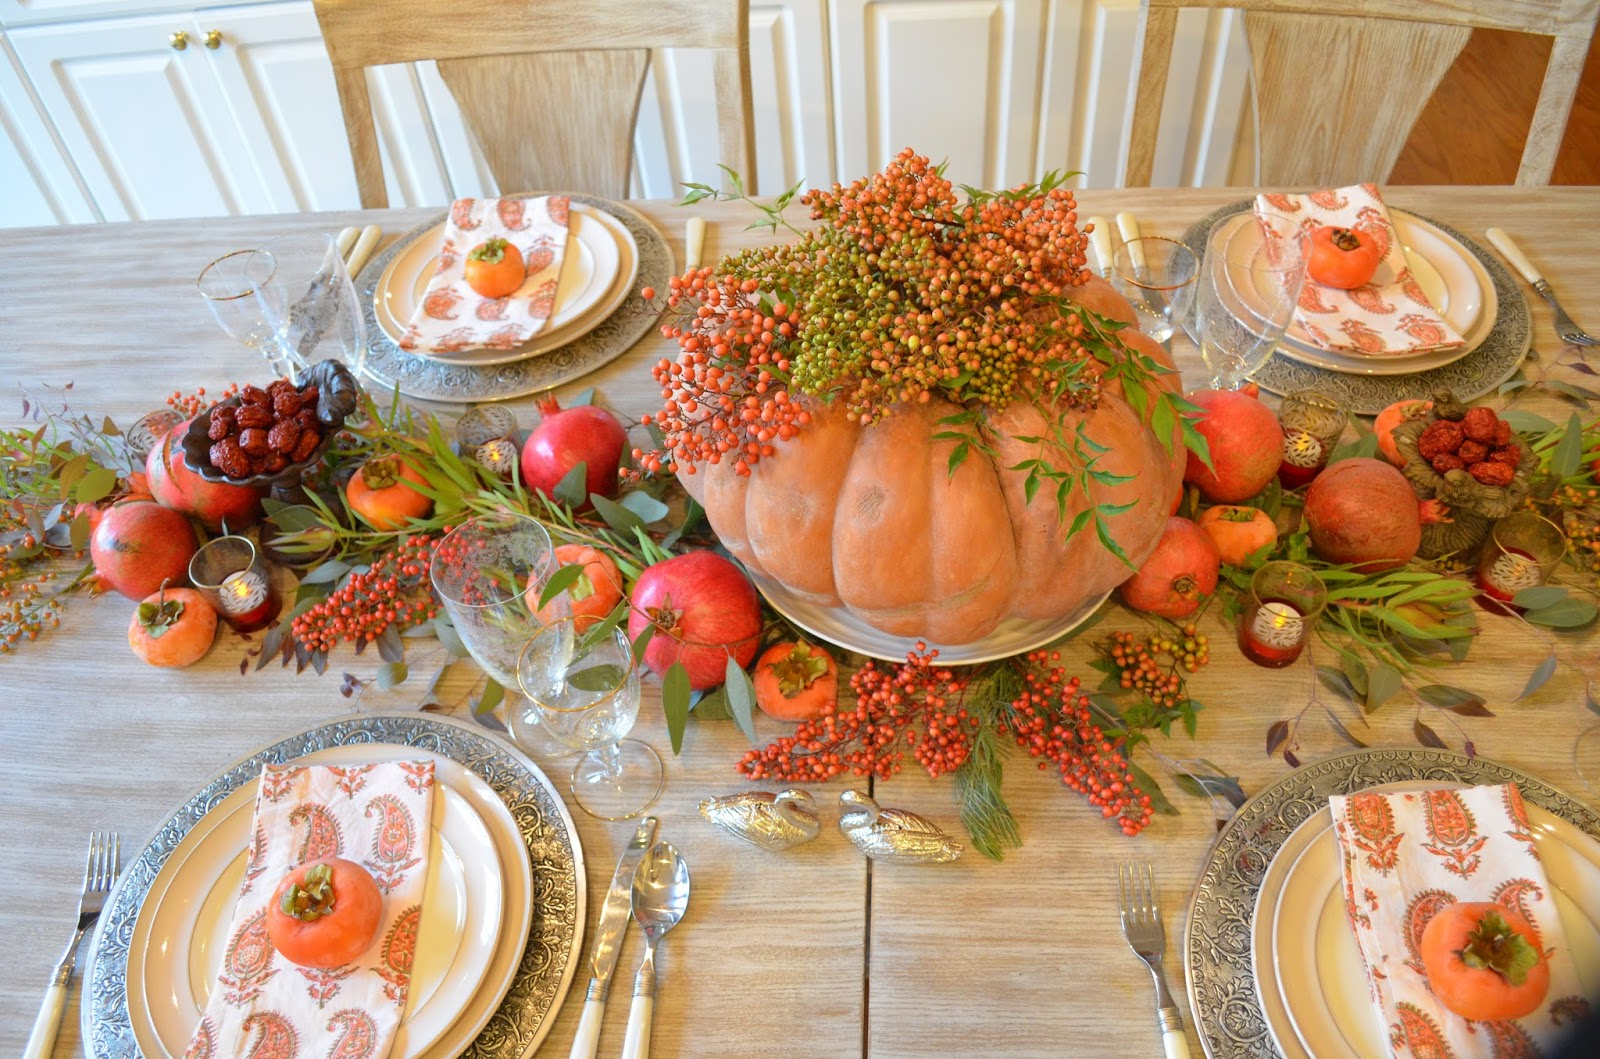 Entertaining From an Ethnic Indian Kitchen: My Thanksgiving table